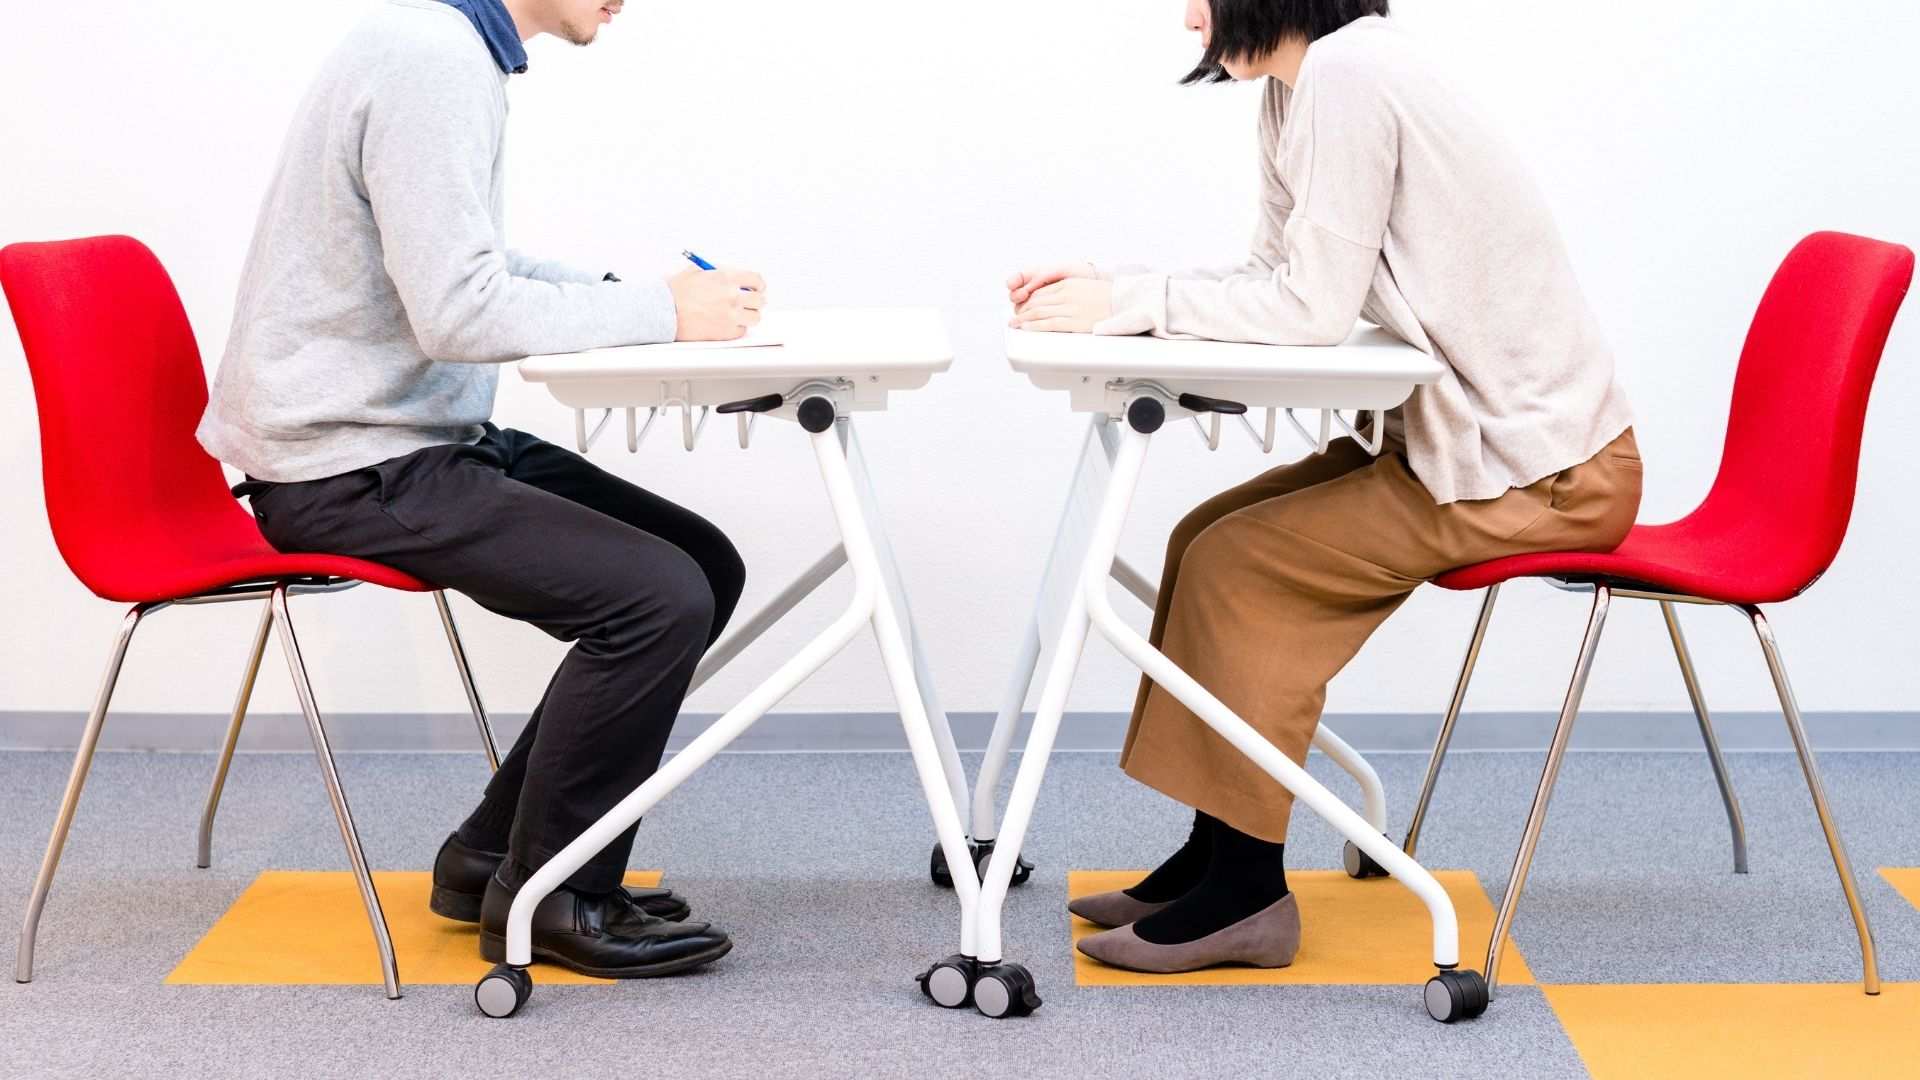 A young adult and a student sit across from each other in interview style stead in rolling chairs and desks — their faces are not visible